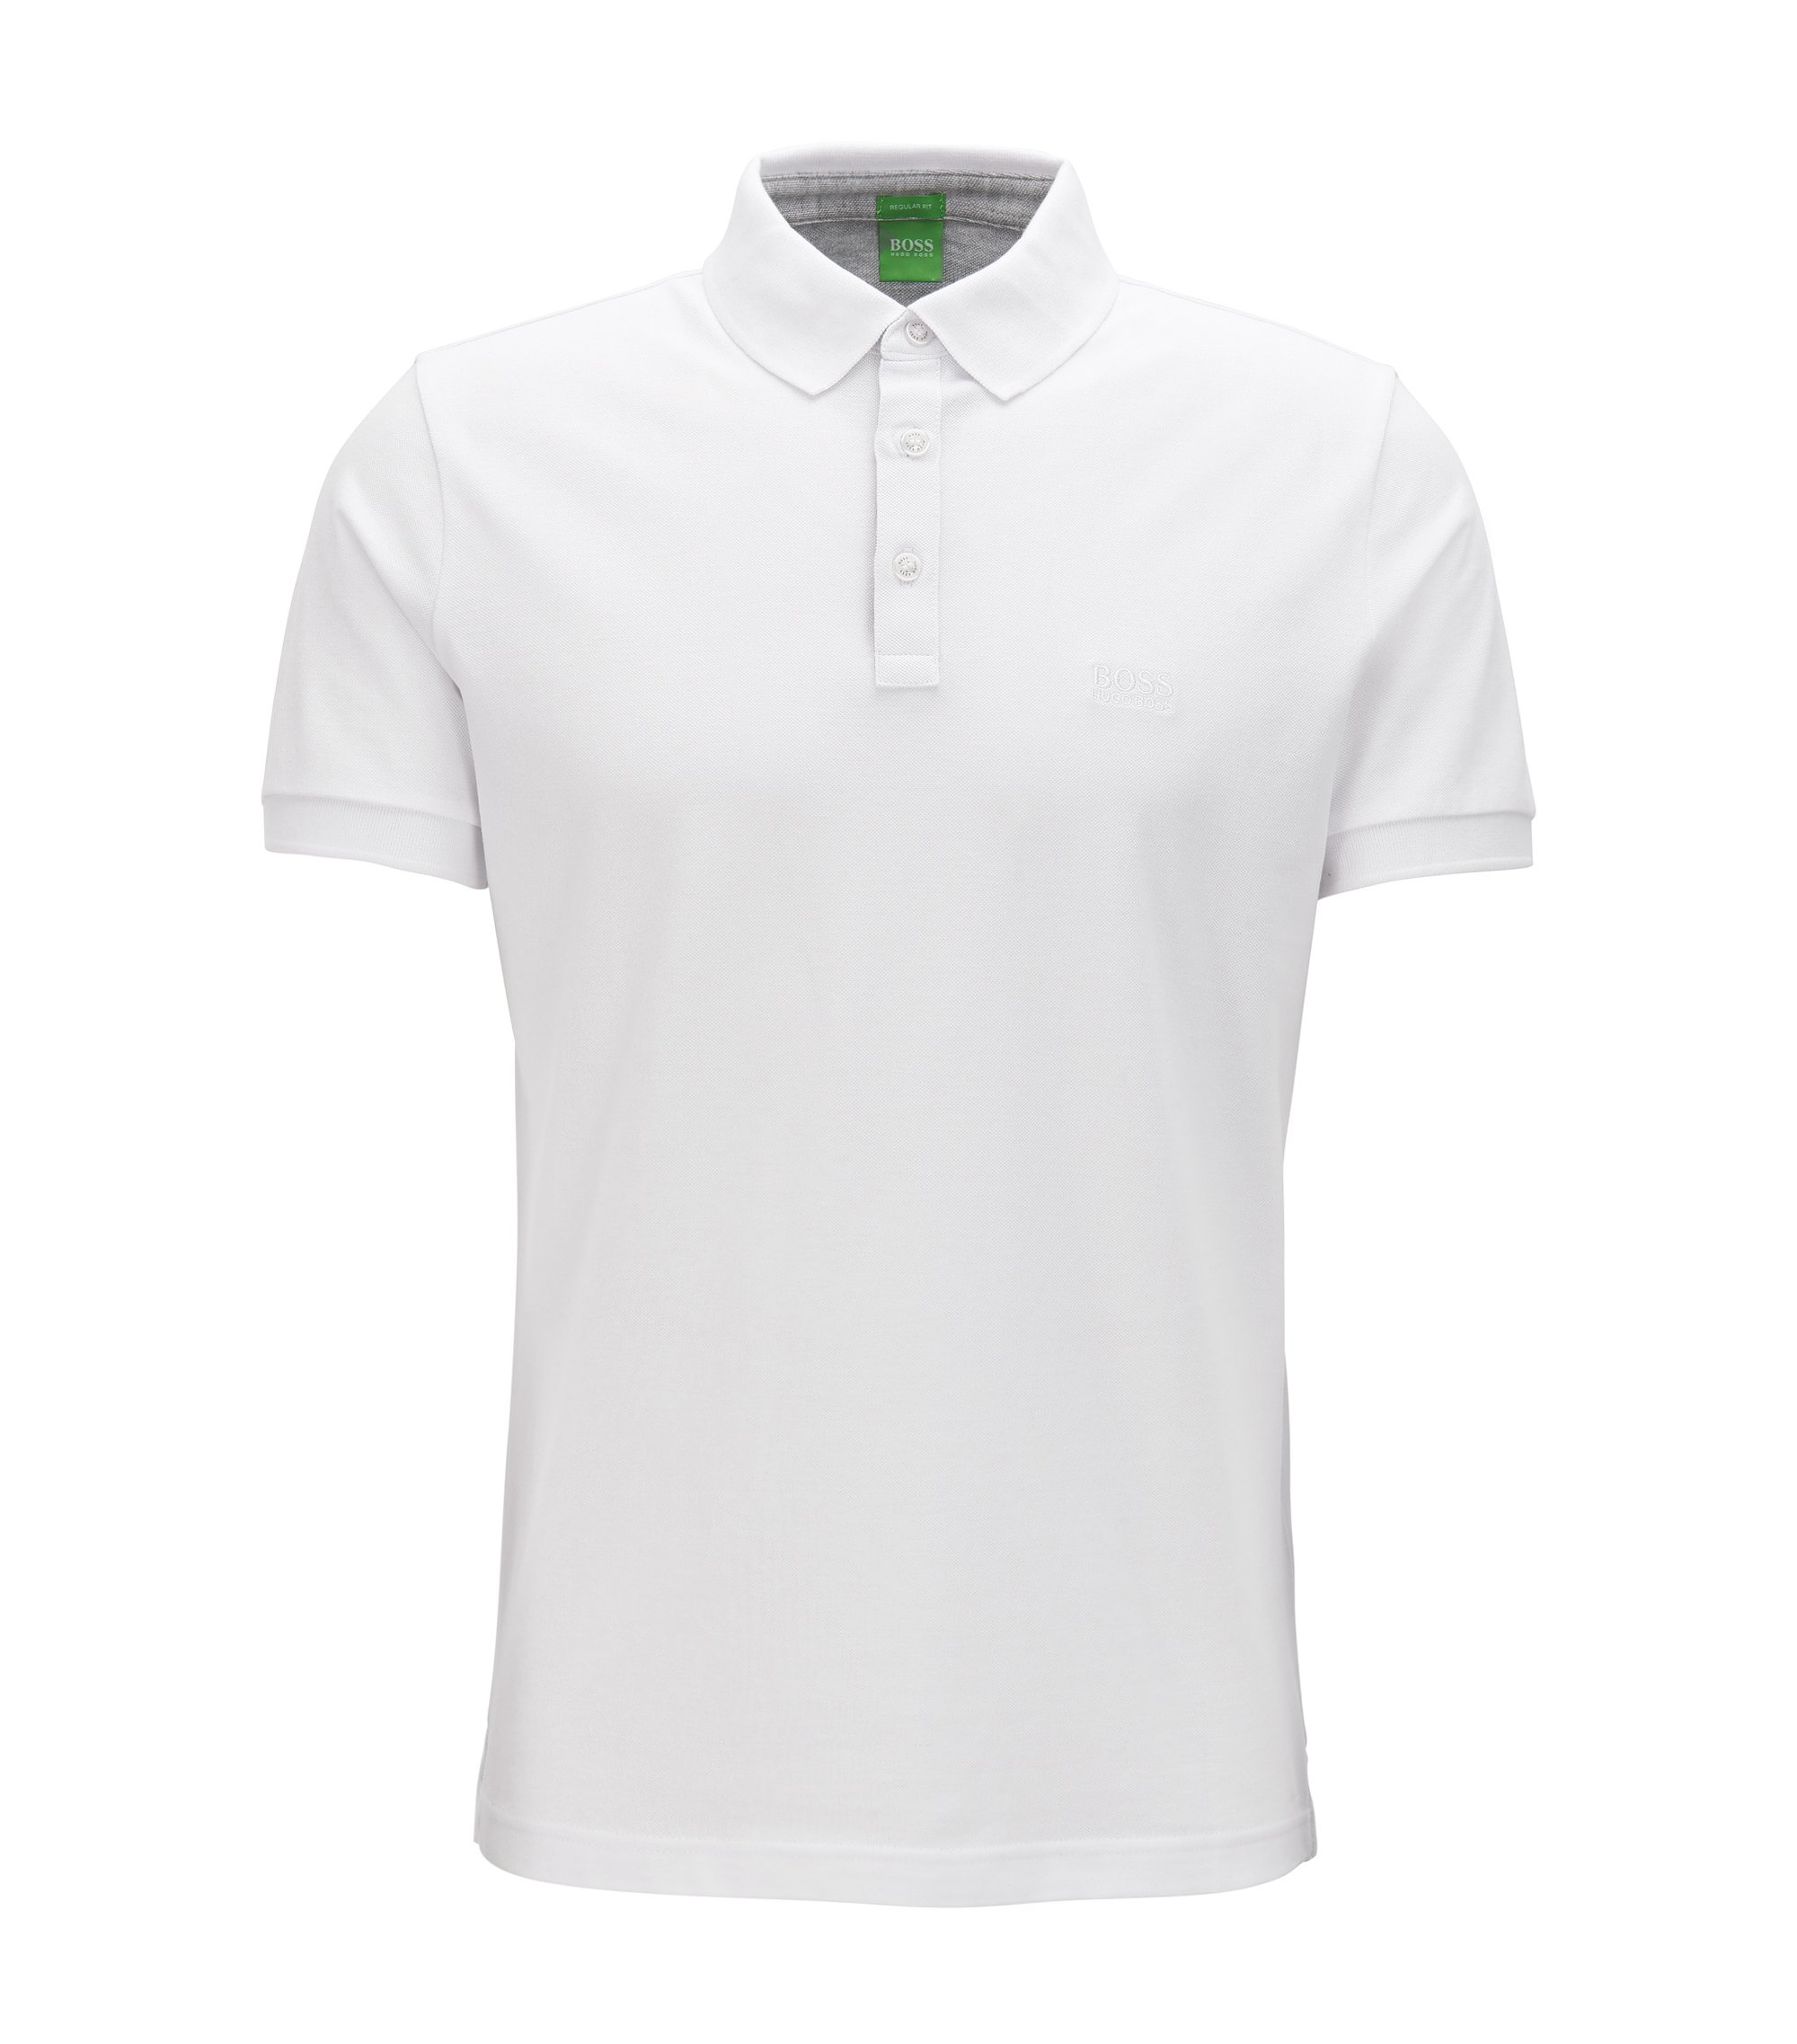 Polo Regular Fit rehaussé de détails contrastants en coton Oxford, Blanc